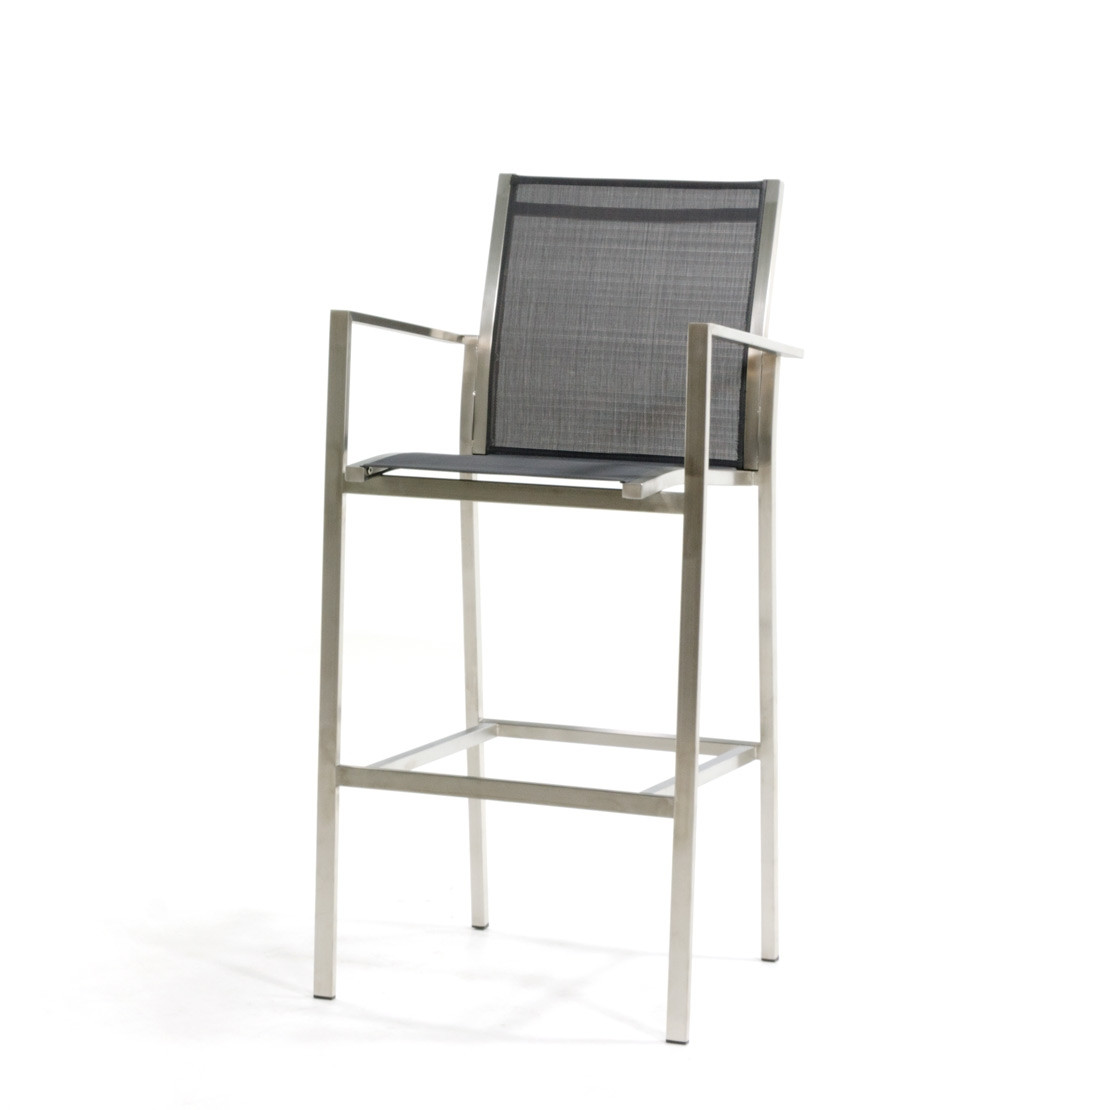 Falck RVS grey bar chair